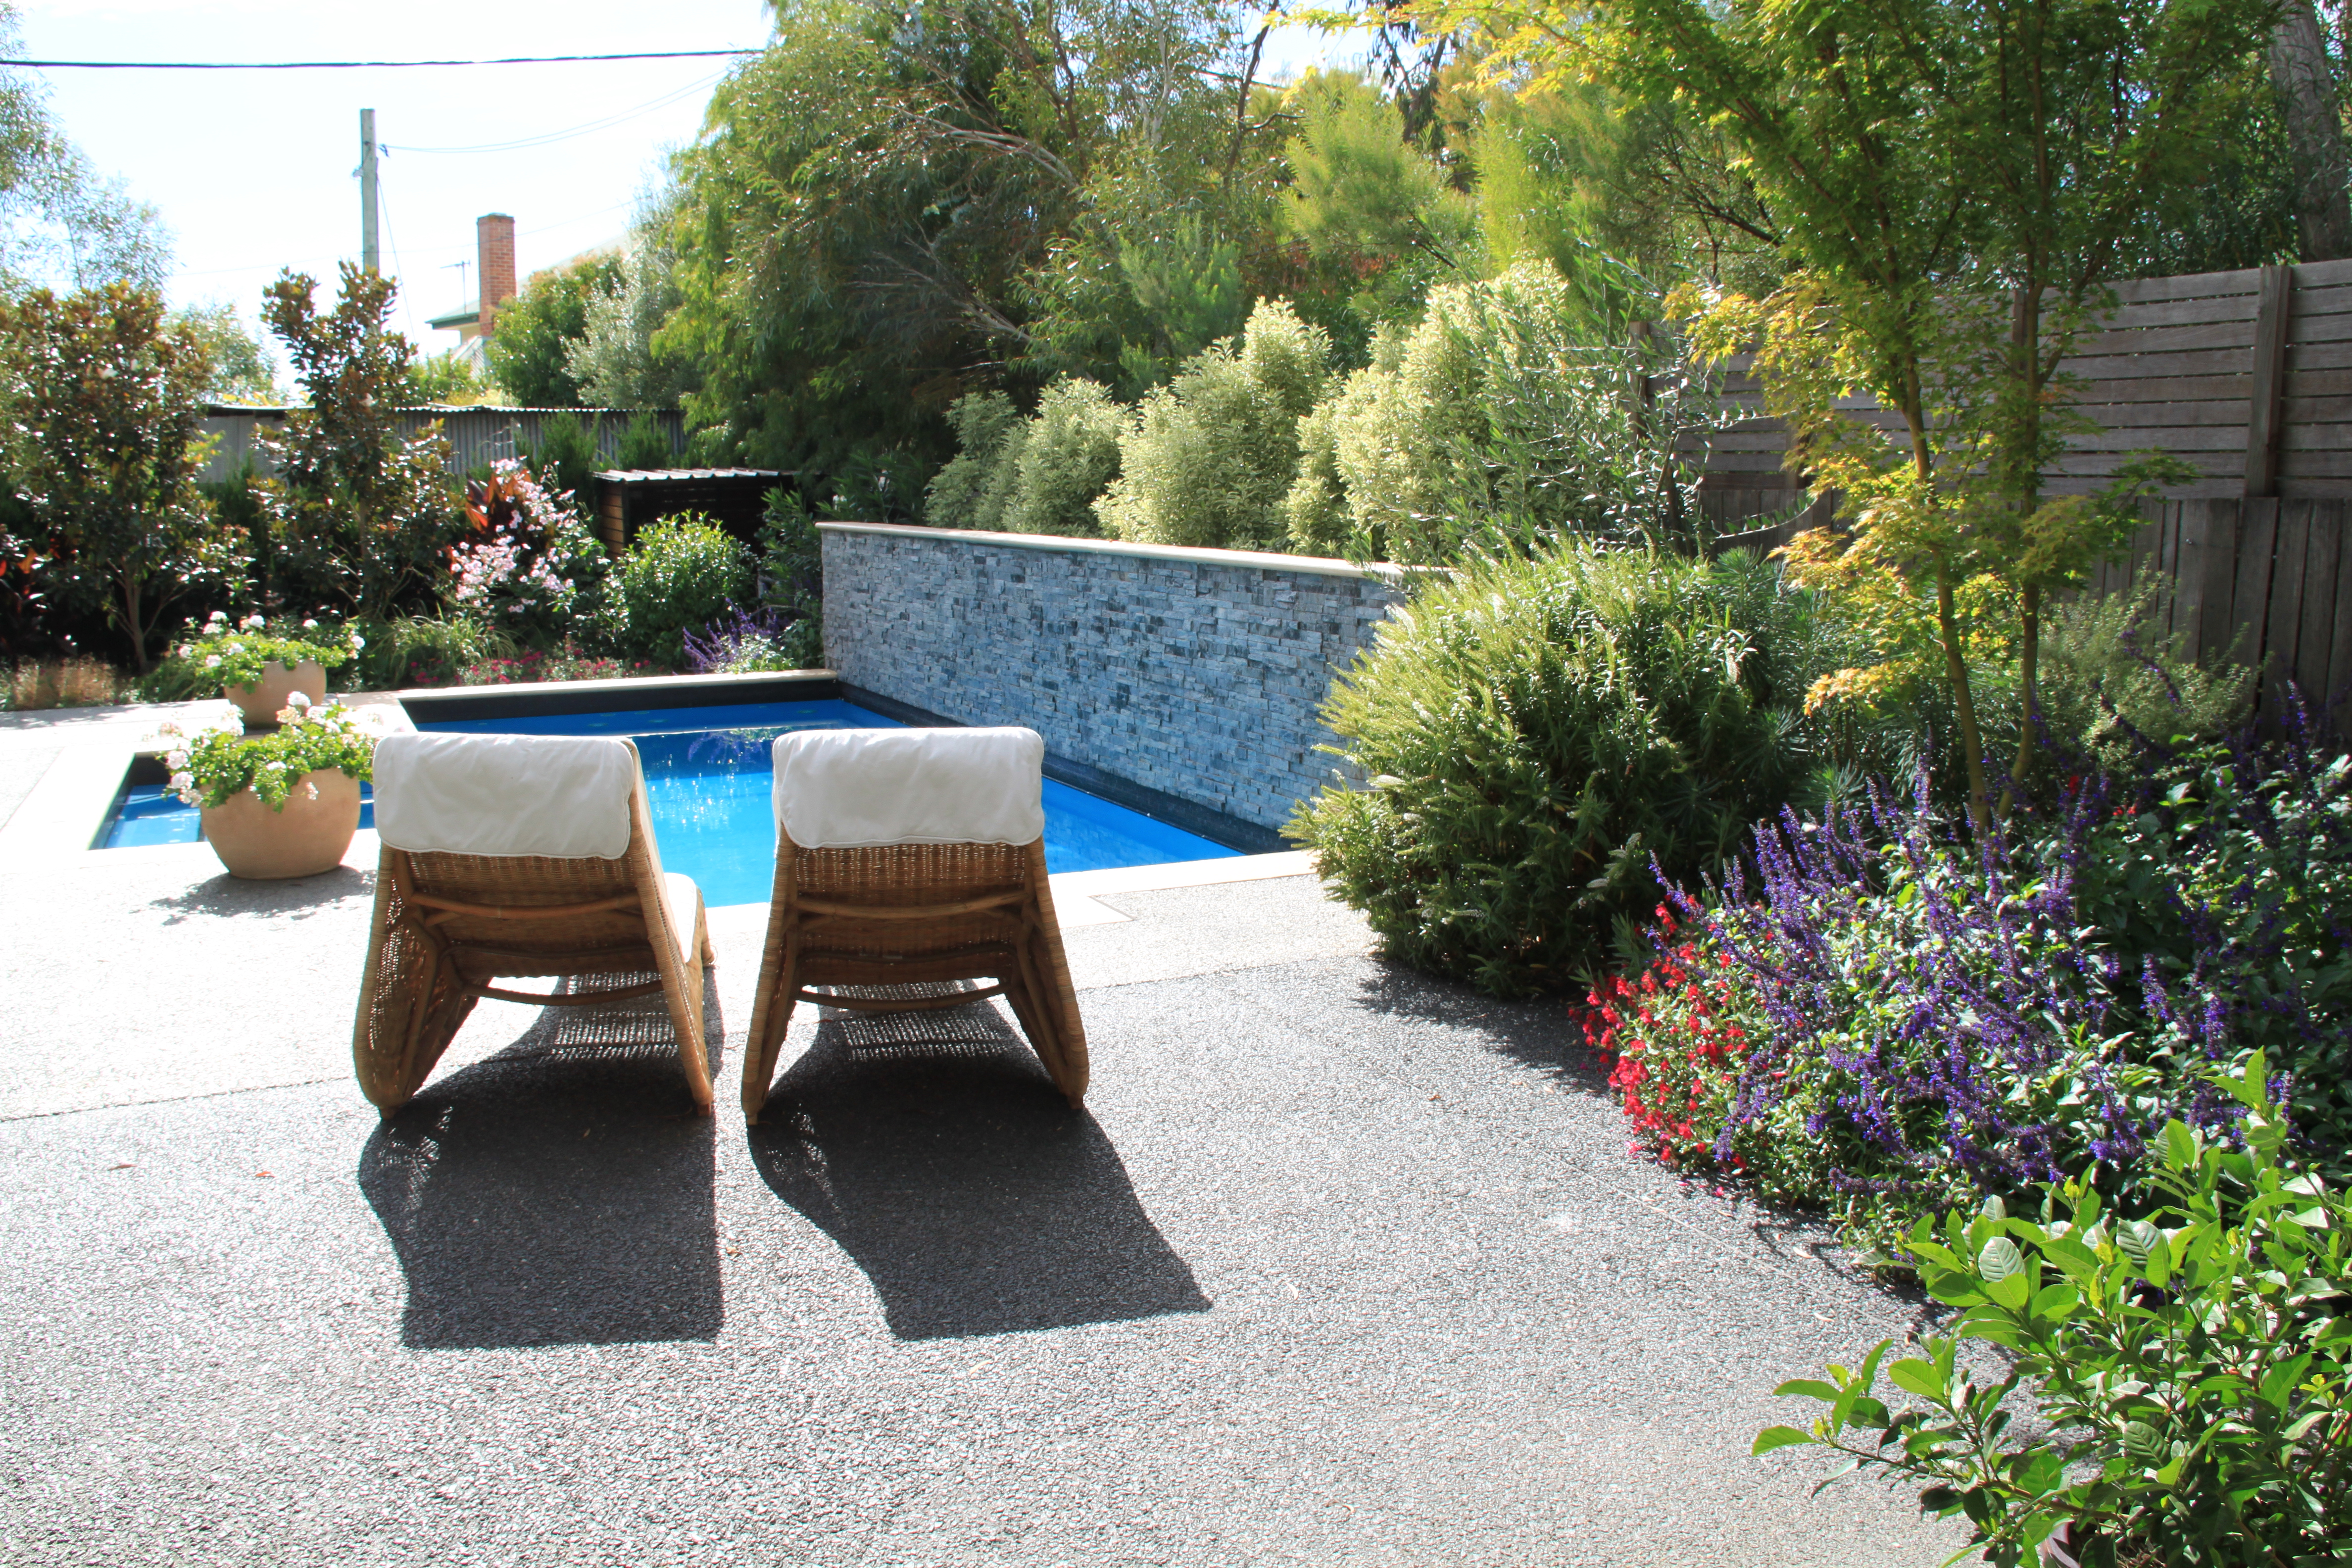 Poolside garden janna schreier garden design for The garden pool